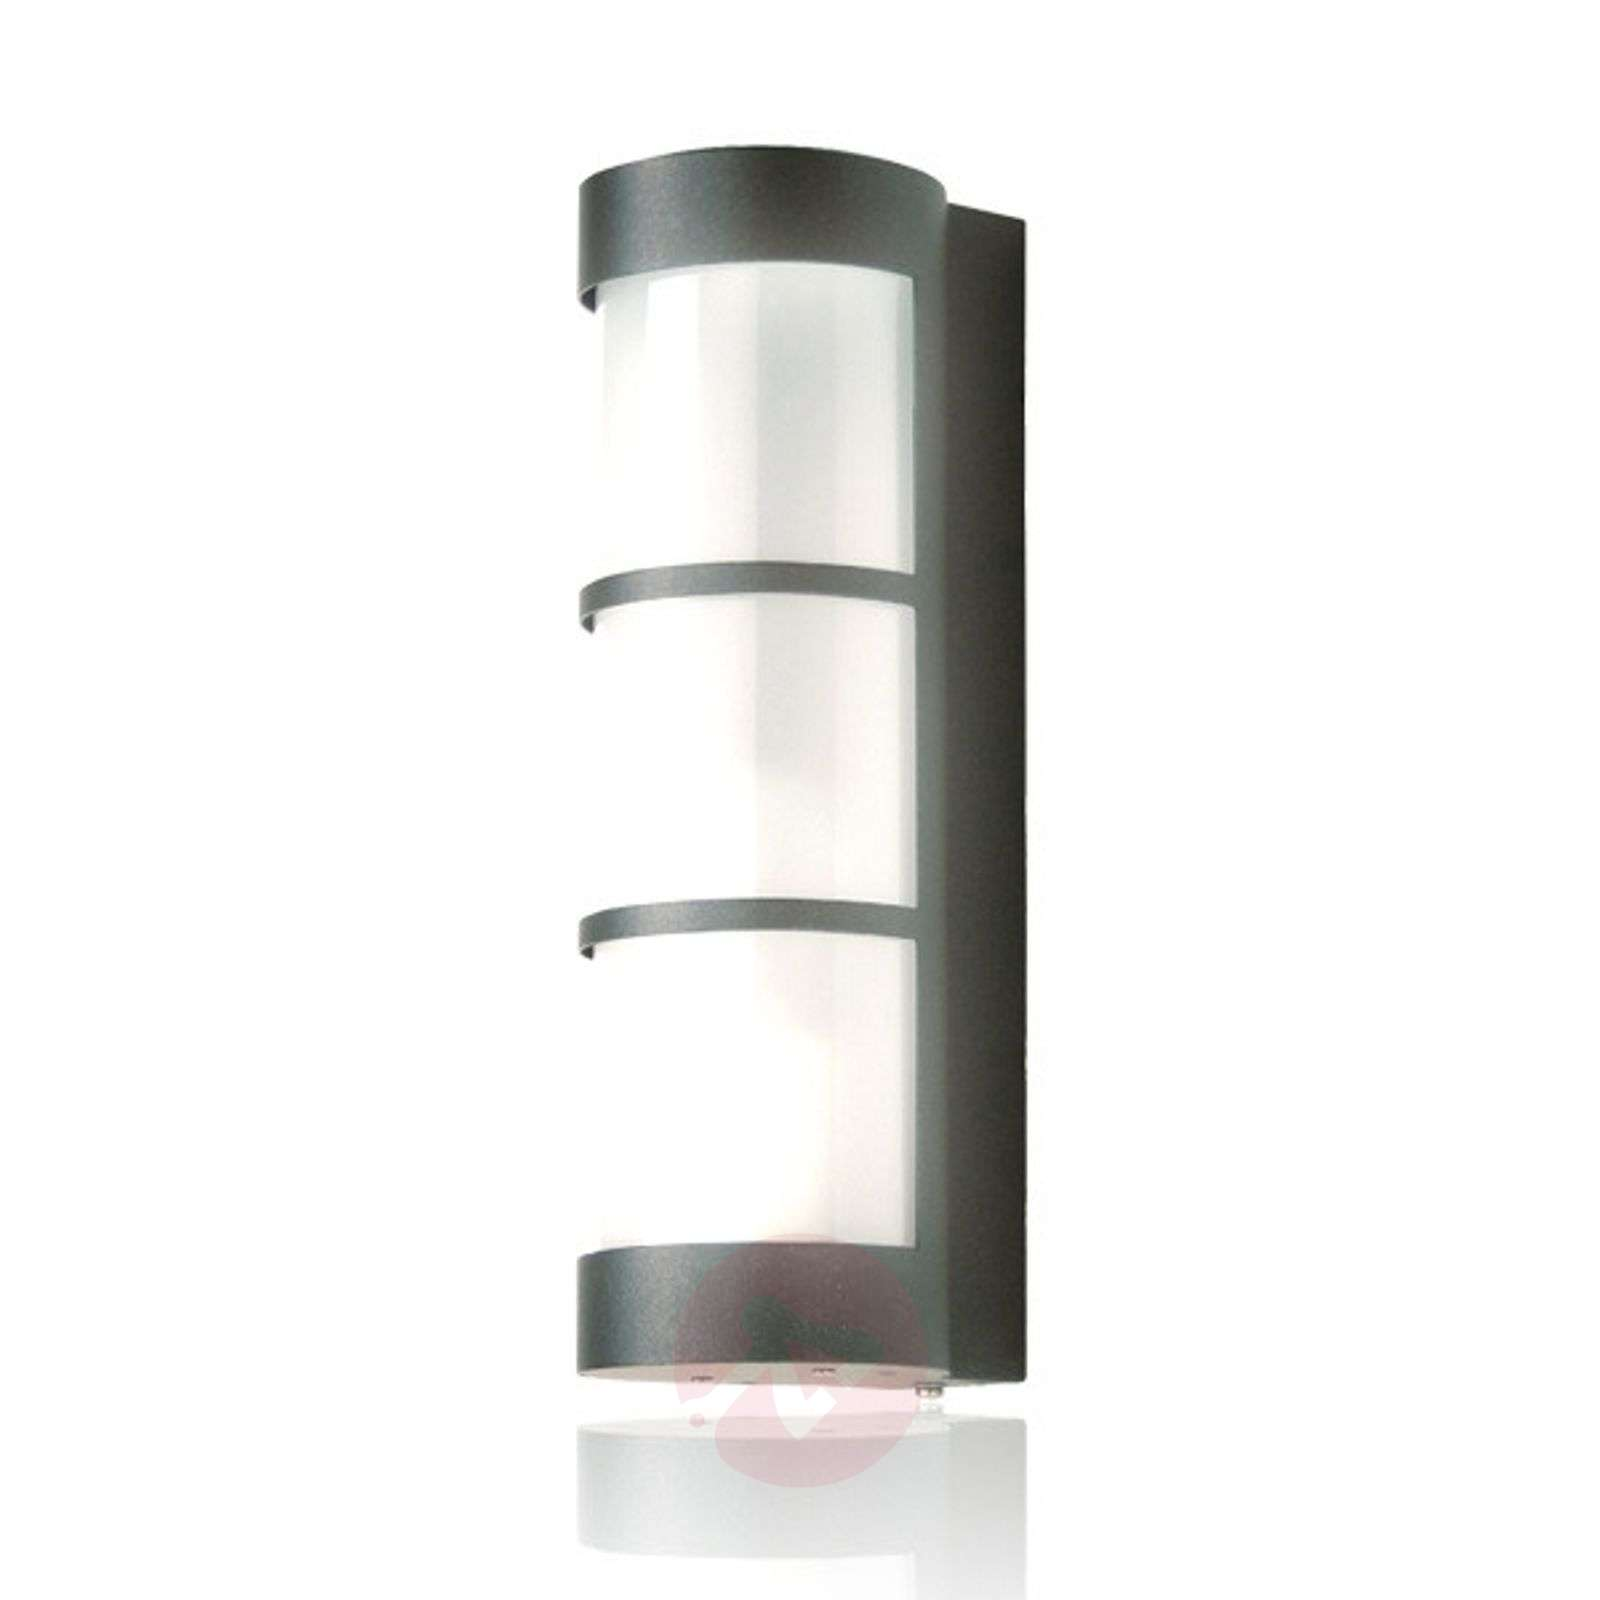 Modern outdoor wall lamp Shine Lights.co.uk